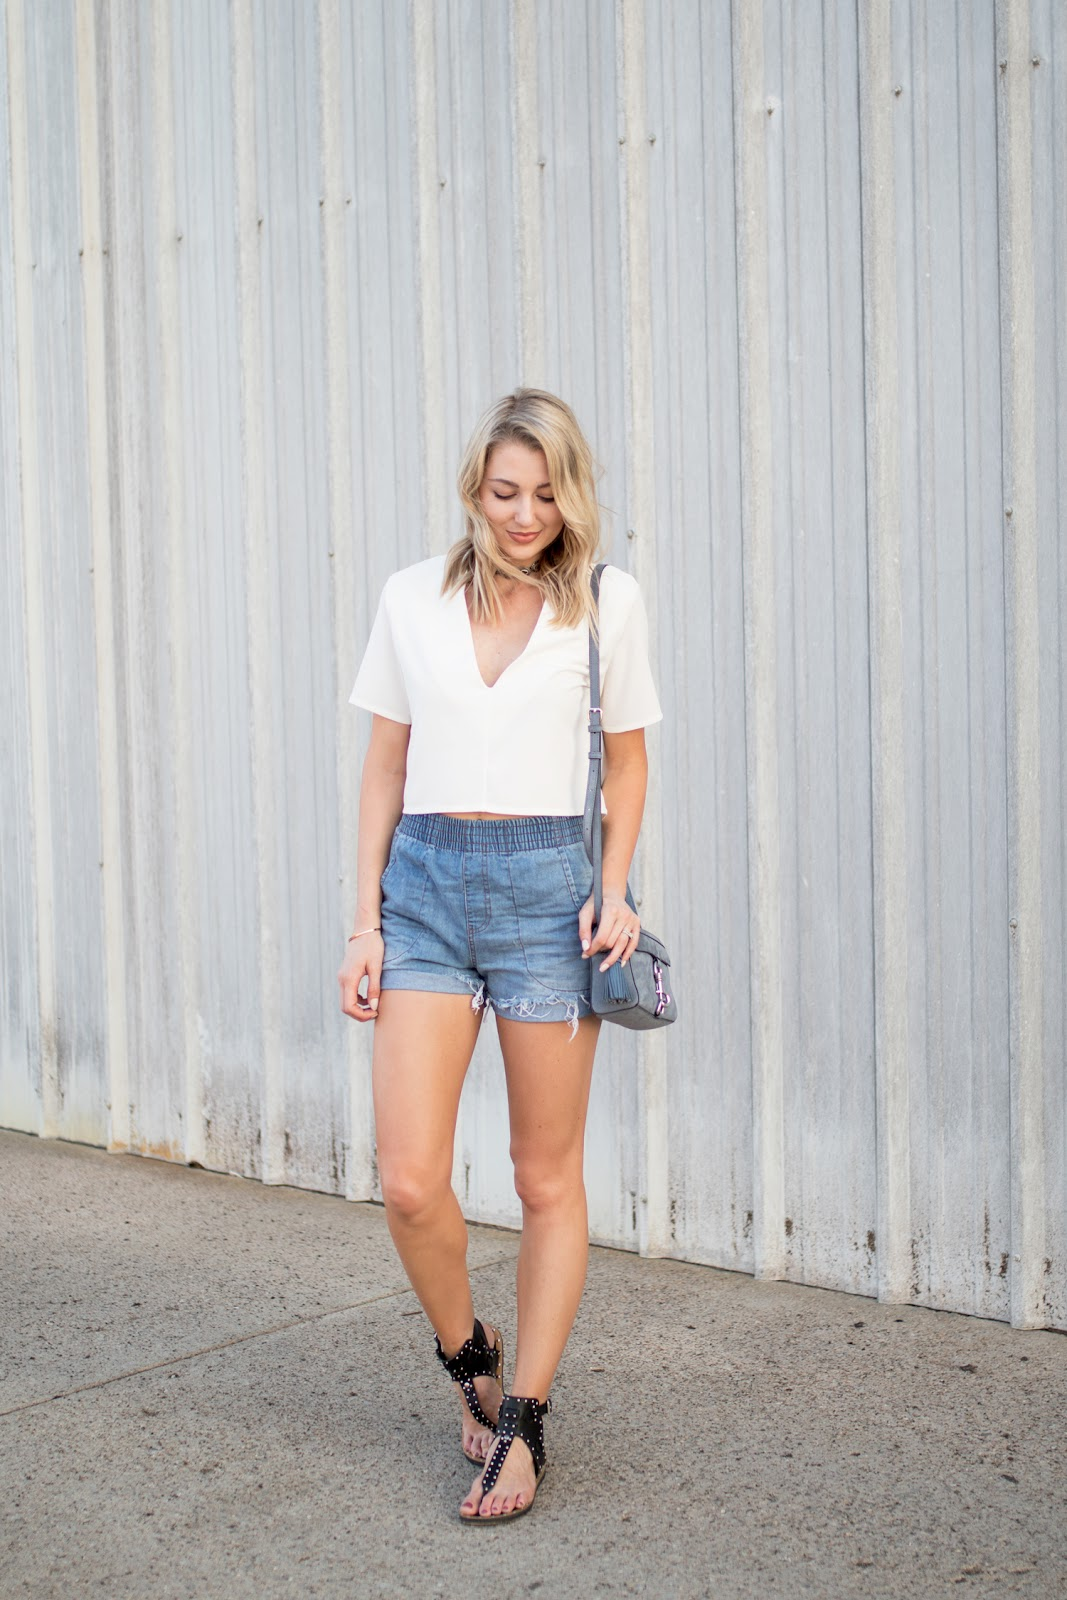 Structured top with casual shorts